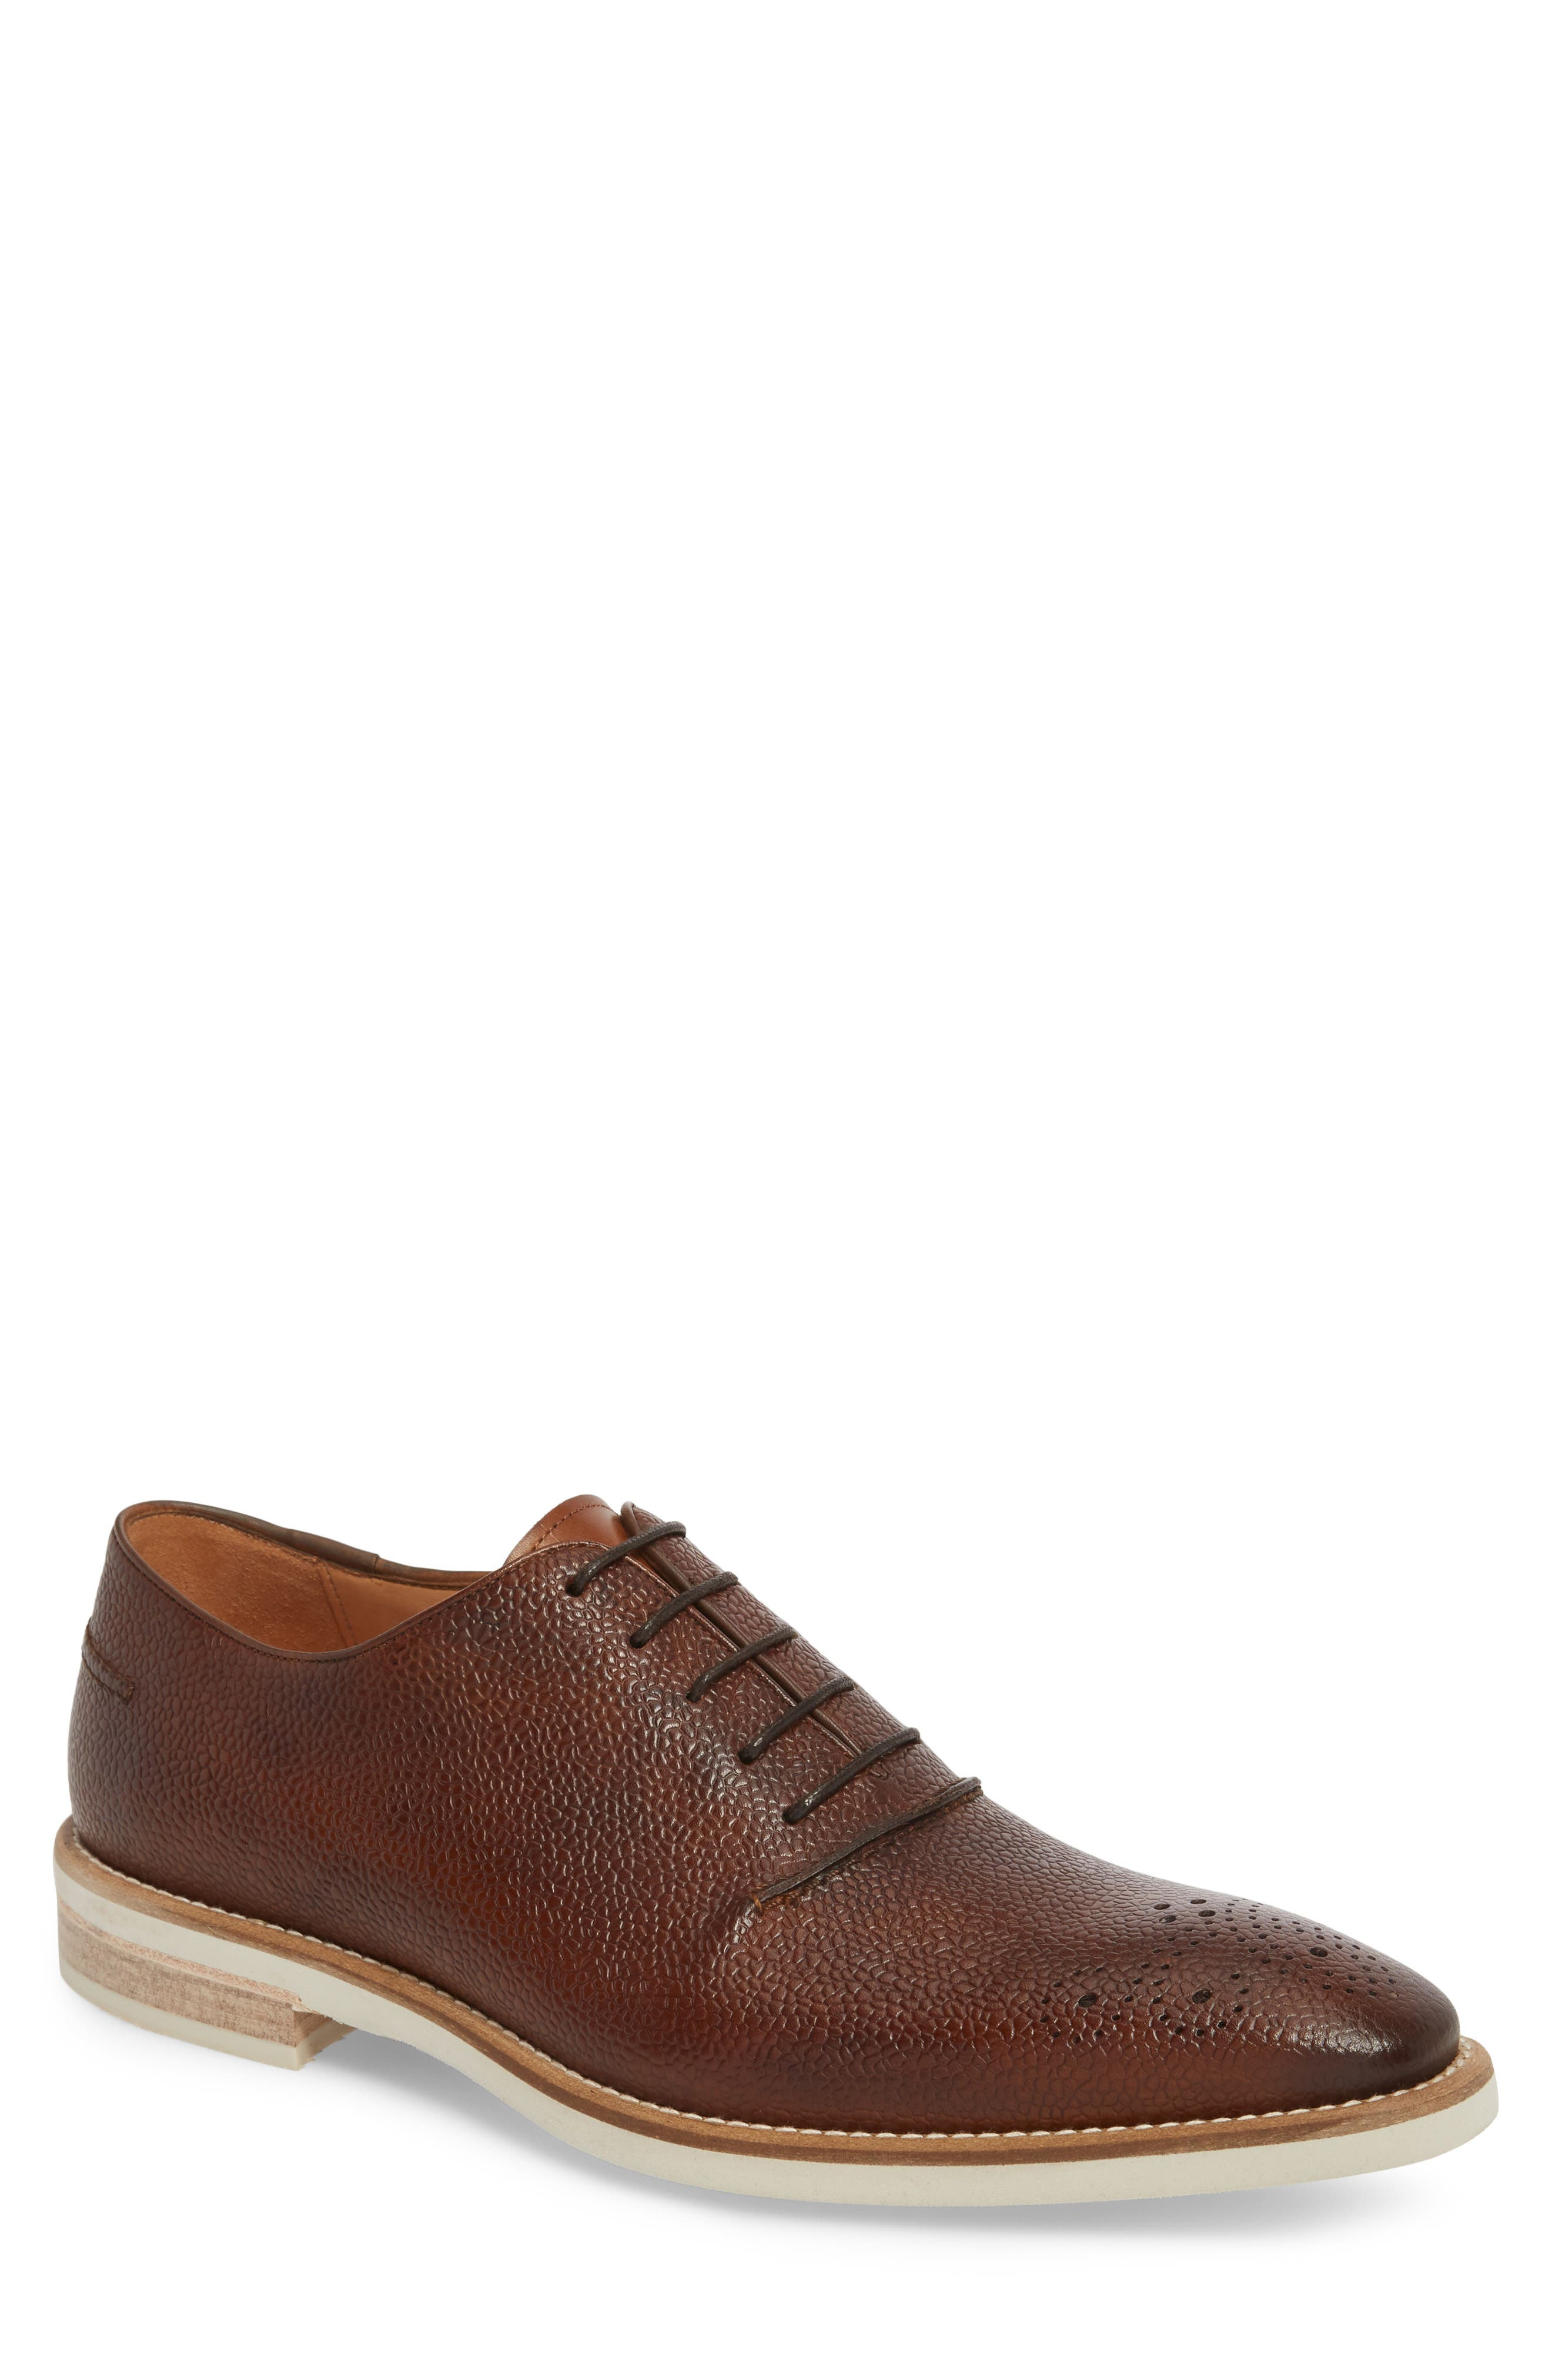 Polux Brogued Oxford,                             Main thumbnail 1, color,                             Cognac Leather